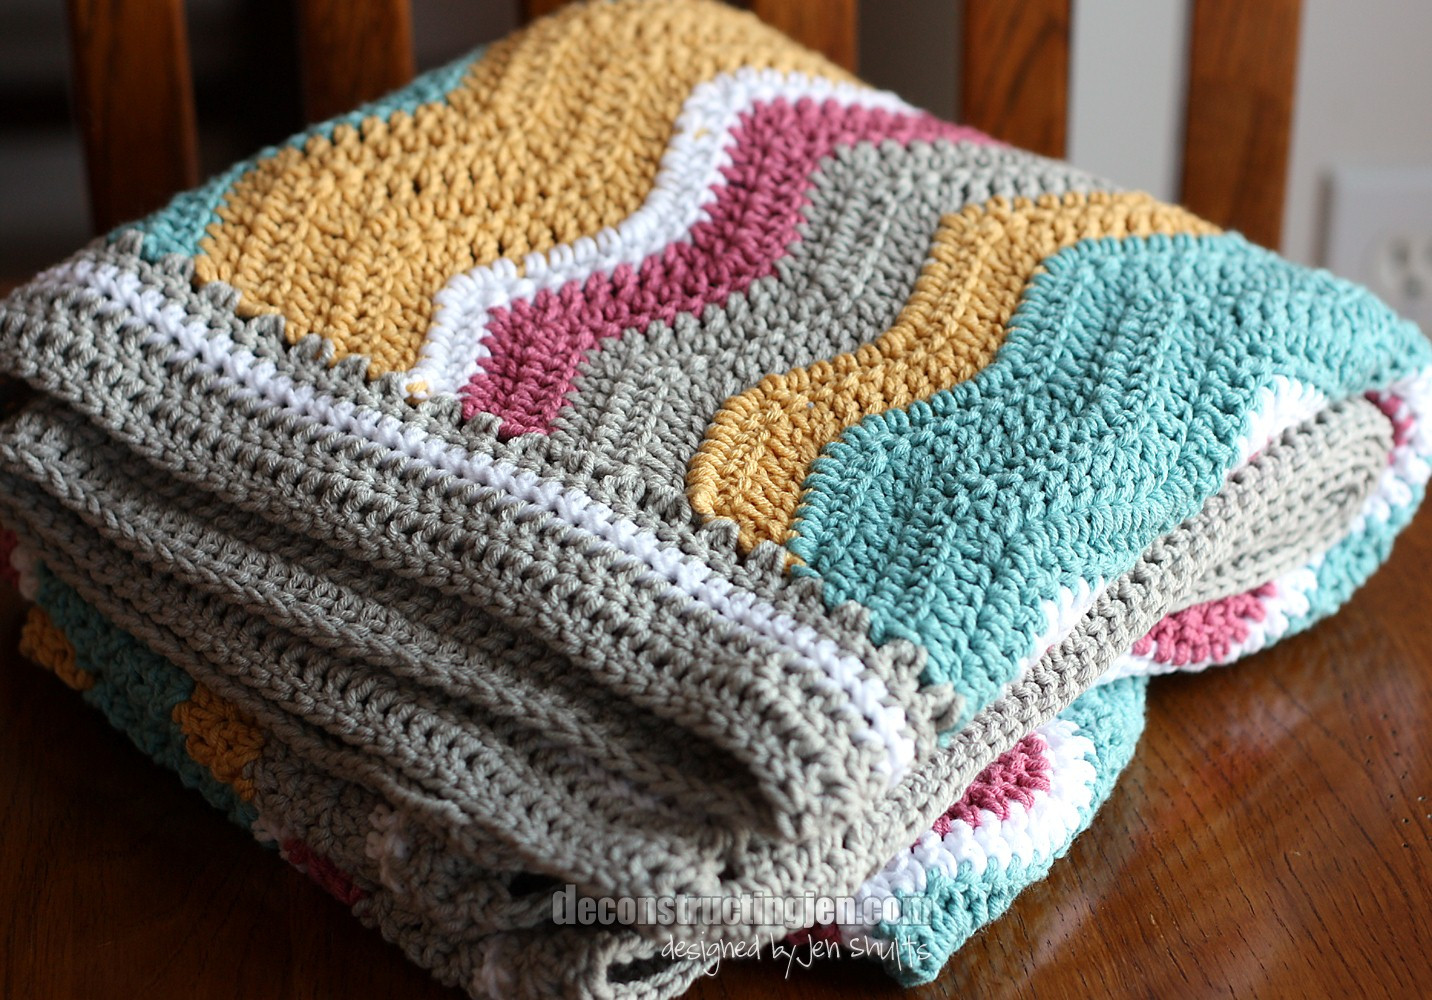 New Double Crochet Ripple Baby Afghan Pattern Double Crochet Afghan Of Fresh 42 Images Double Crochet Afghan